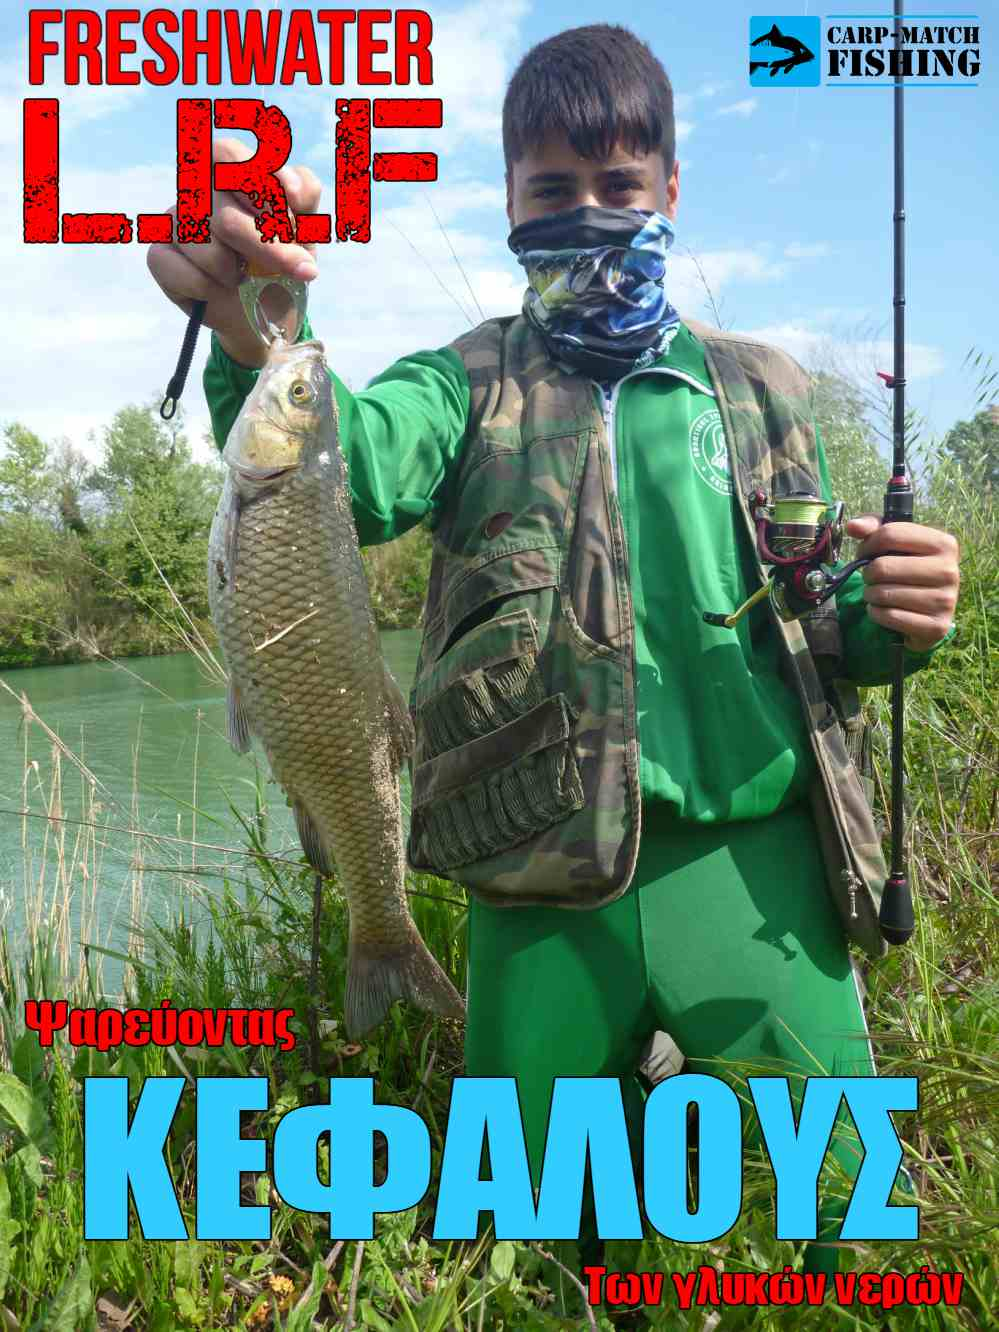 lrf fishing chubs kefalous freshwater carpmatchfishing